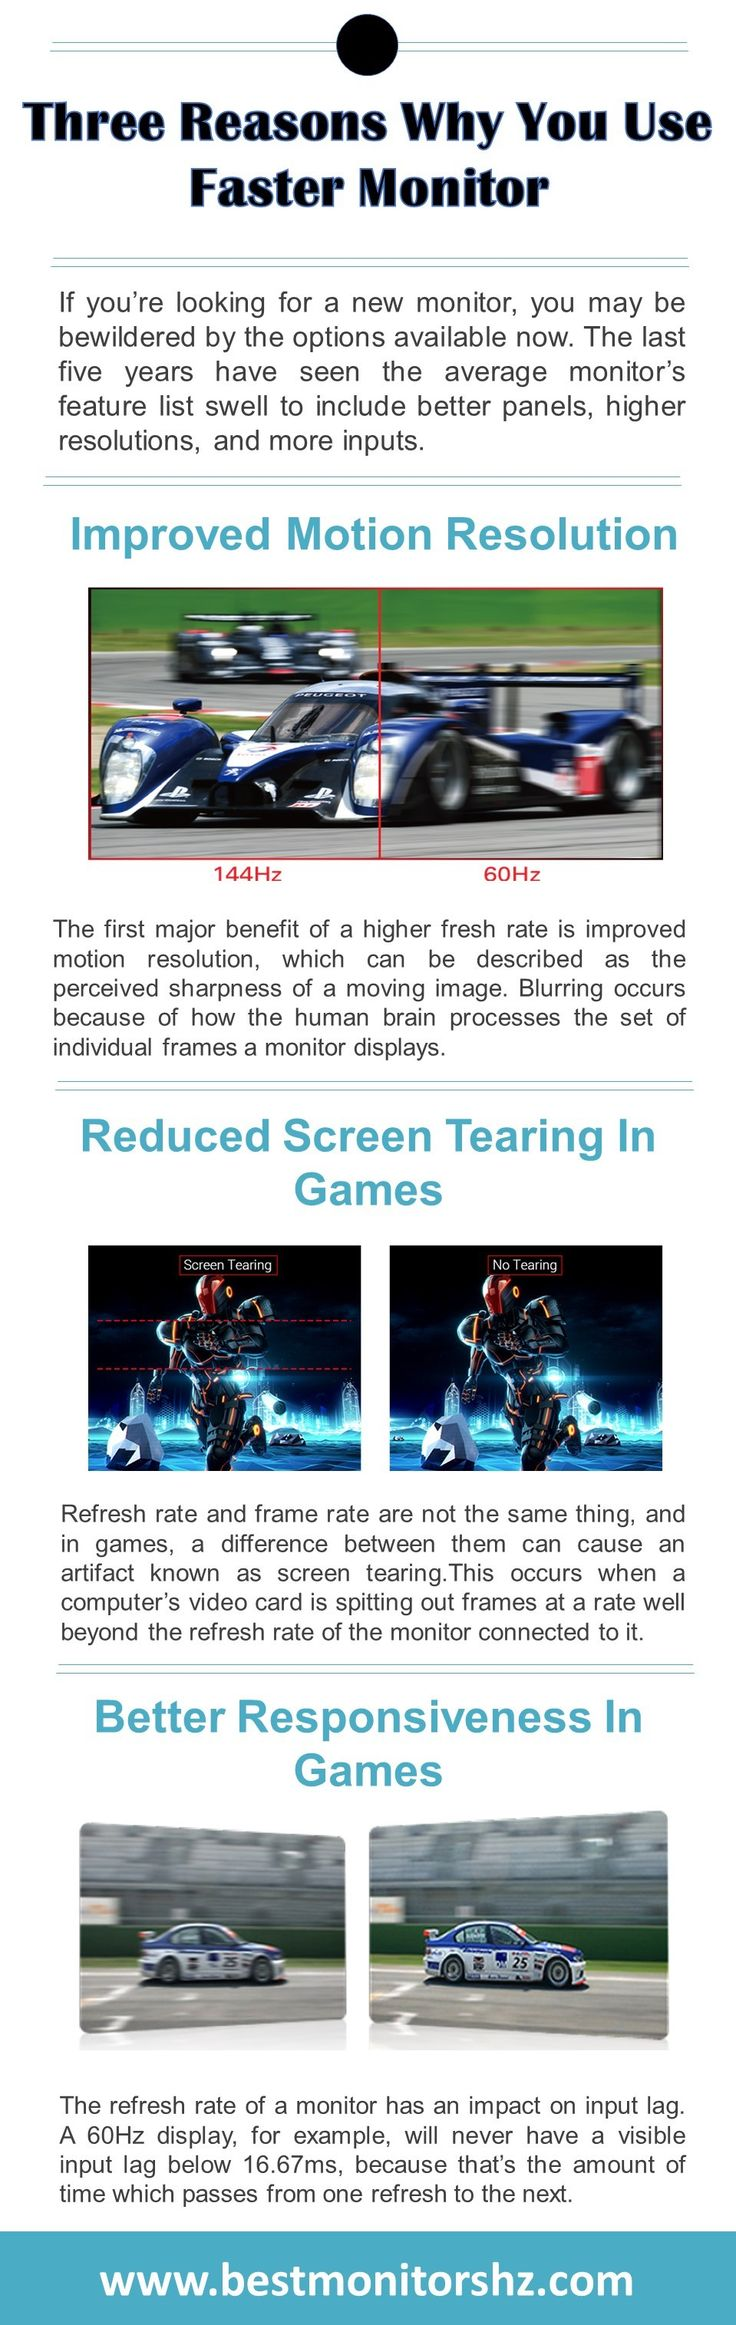 10 best Top 10 Best Gaming Monitors Reviews in 2016 images on ...